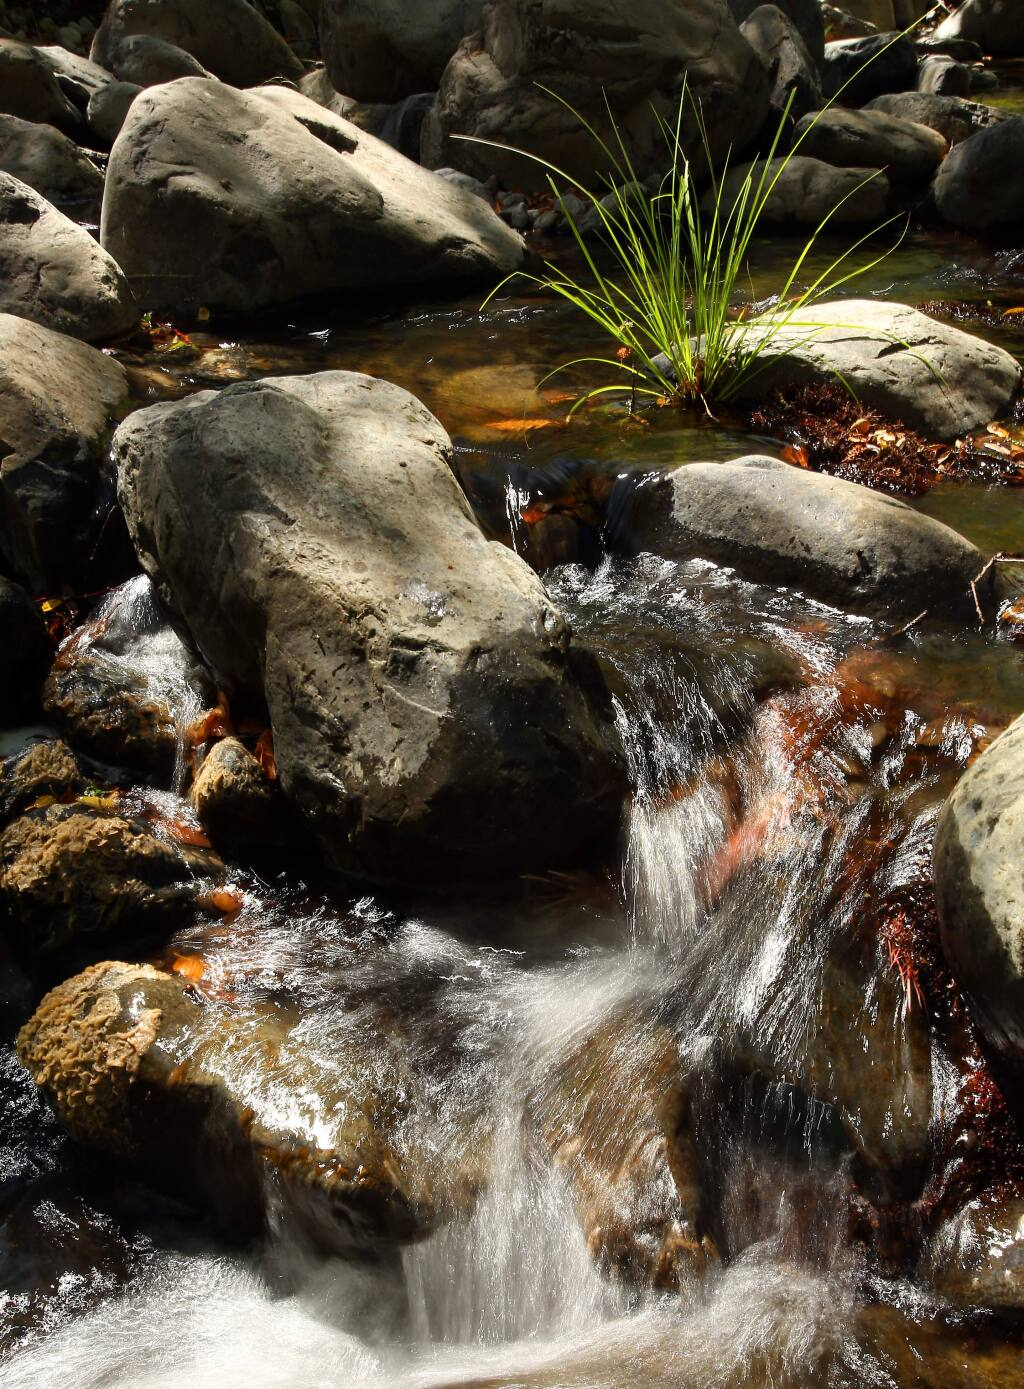 Water flows down Carriger Creek in Sonoma on Wednesday, September 3, 2014. (Christopher Chung/ The Press Democrat)